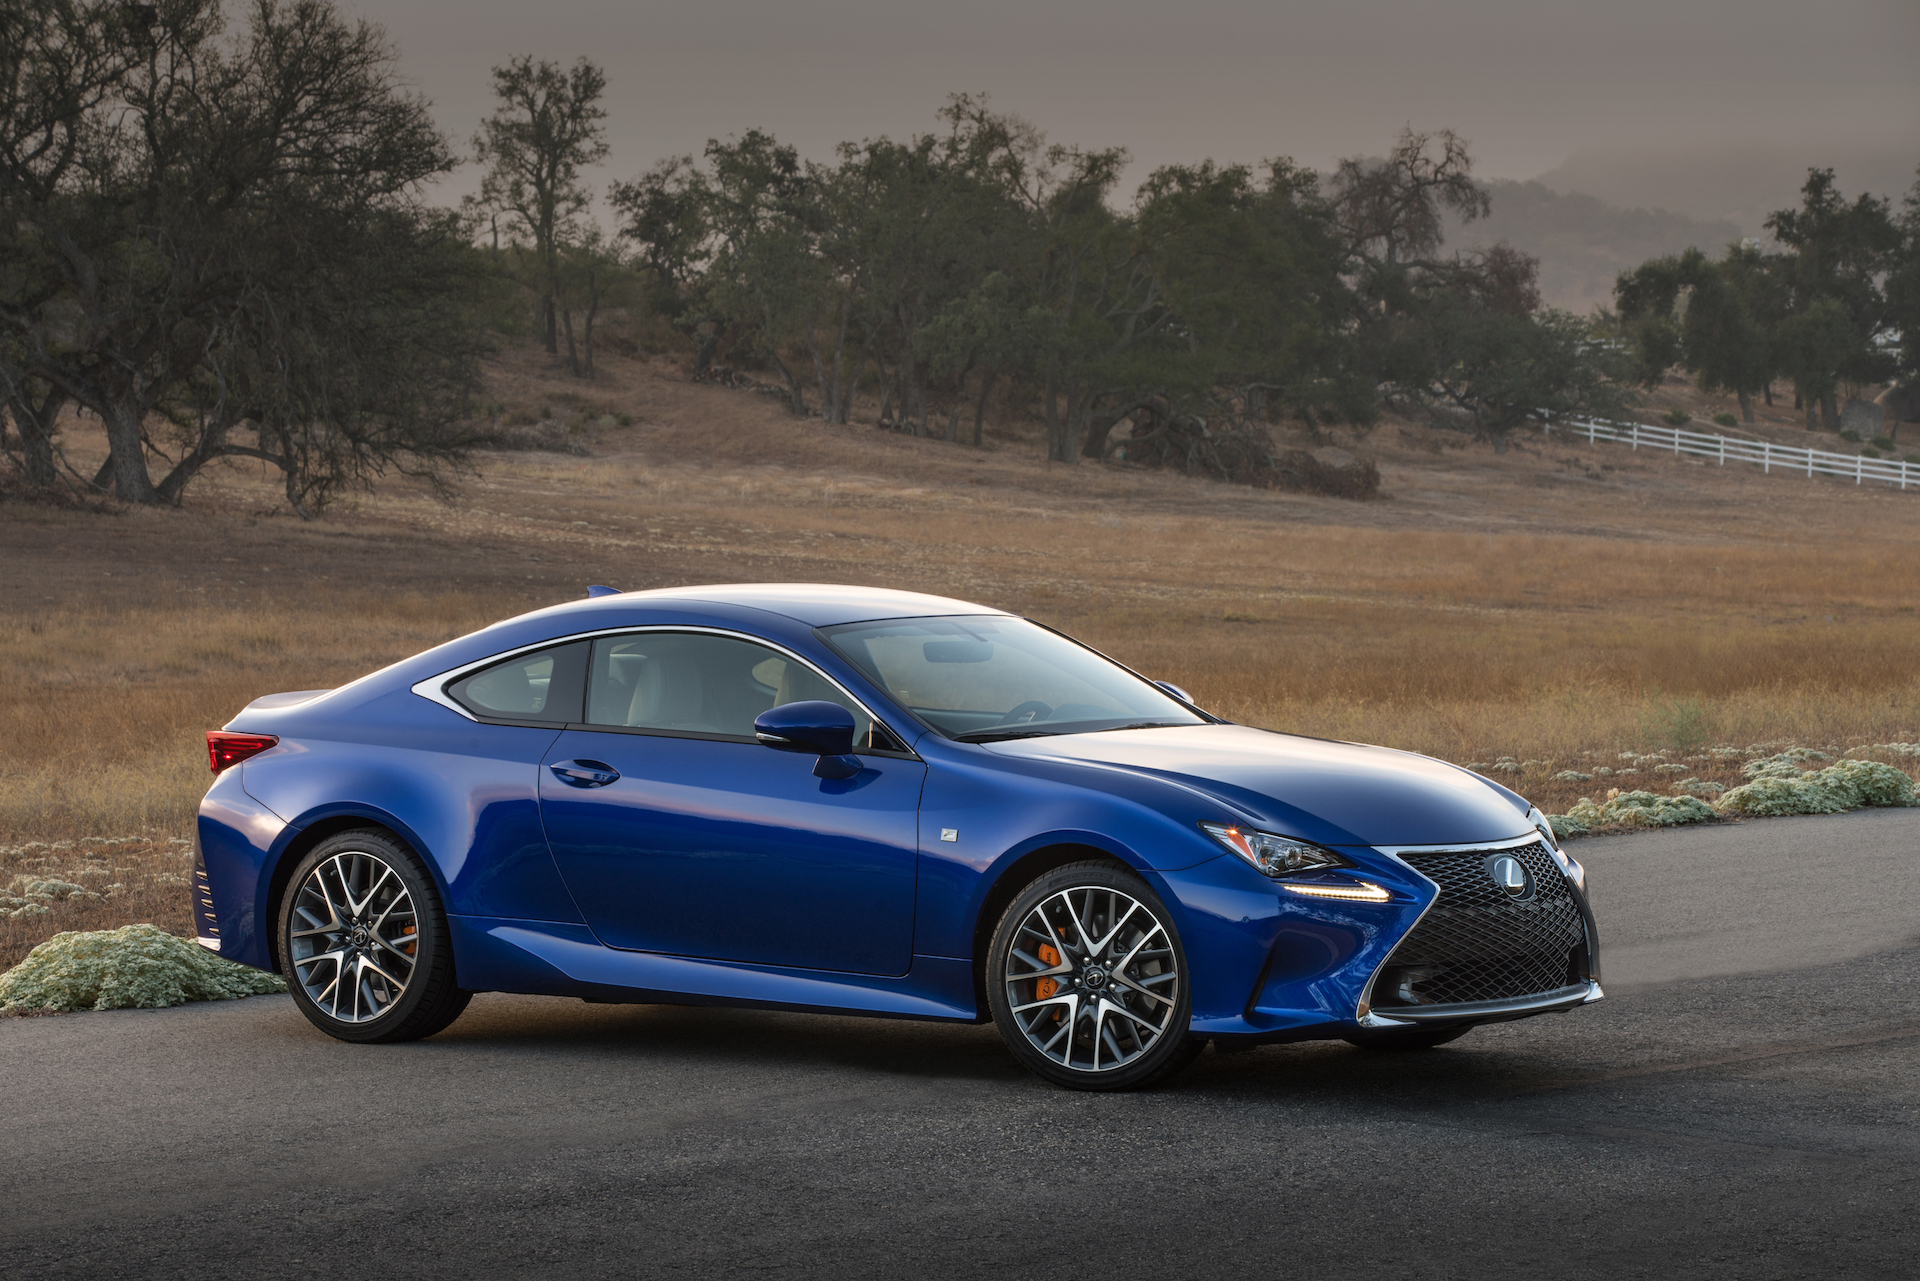 2016 bmw 4 series vs 2016 lexus rc compare cars. Black Bedroom Furniture Sets. Home Design Ideas